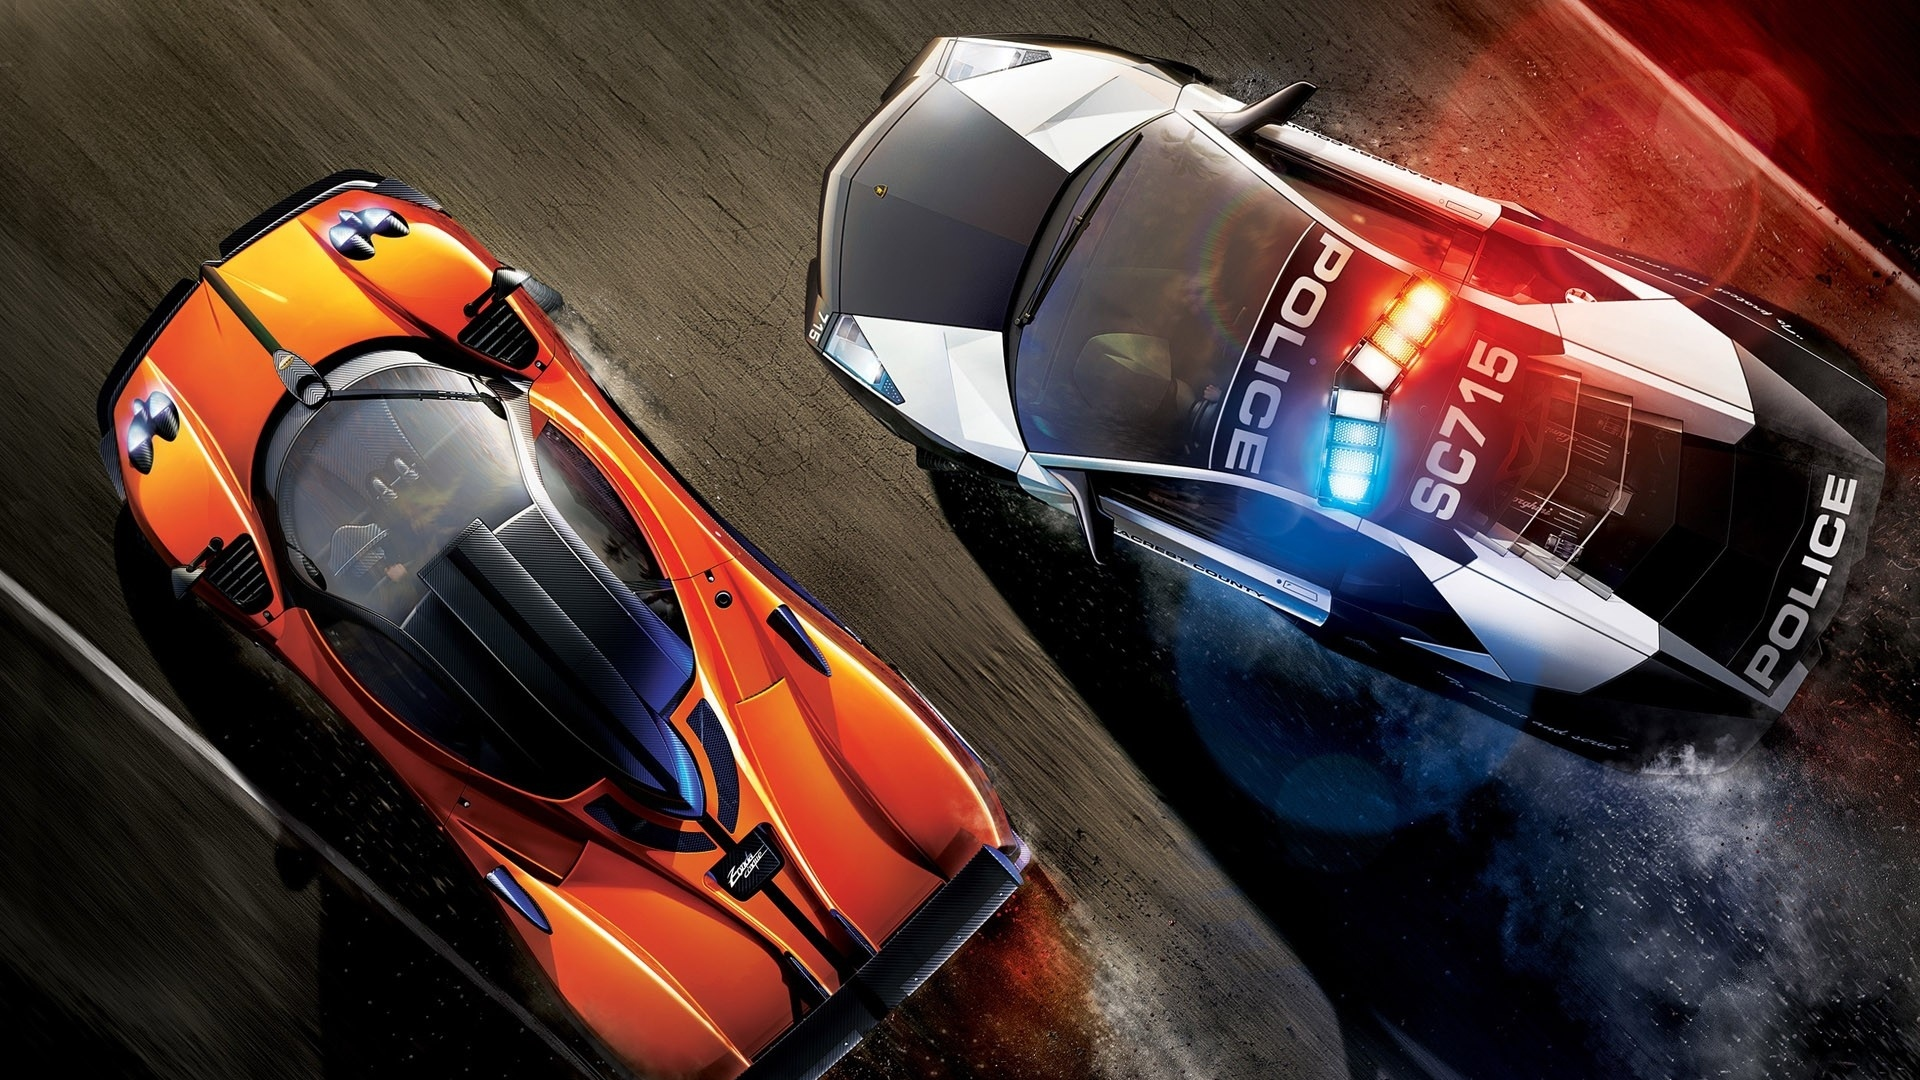 1920x1080-nfs-need-for-speed-car-police-harassment-speed-wallpaper-wpc9001042